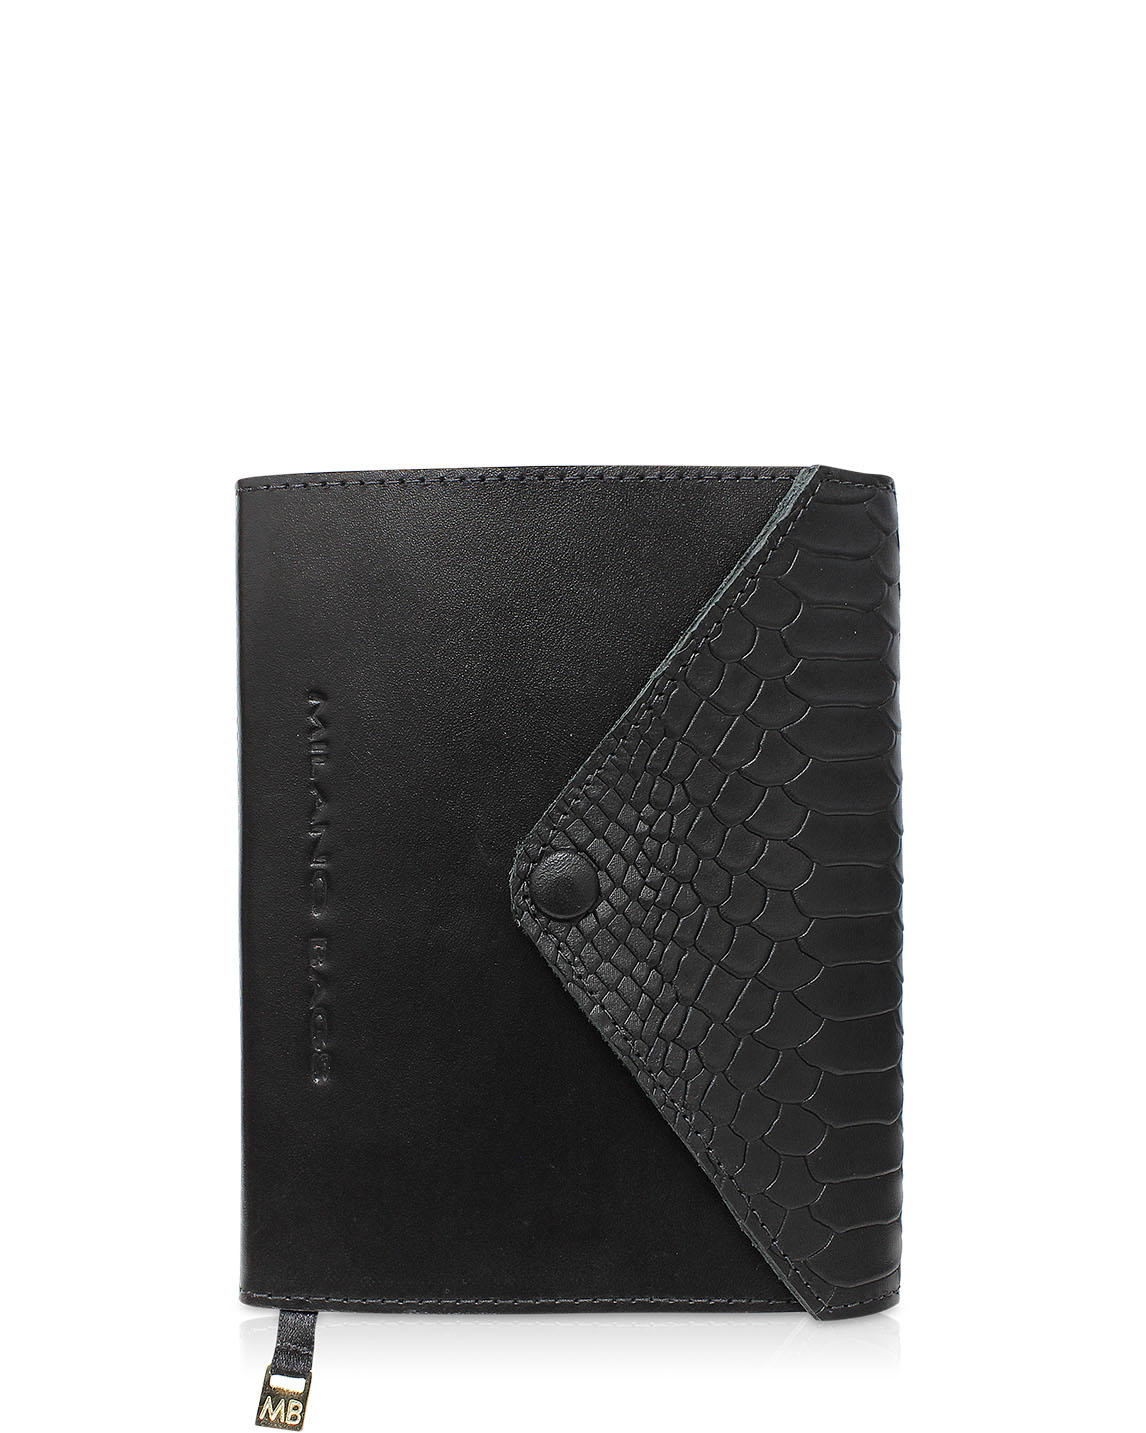 Agenda AG-122 Color Negro